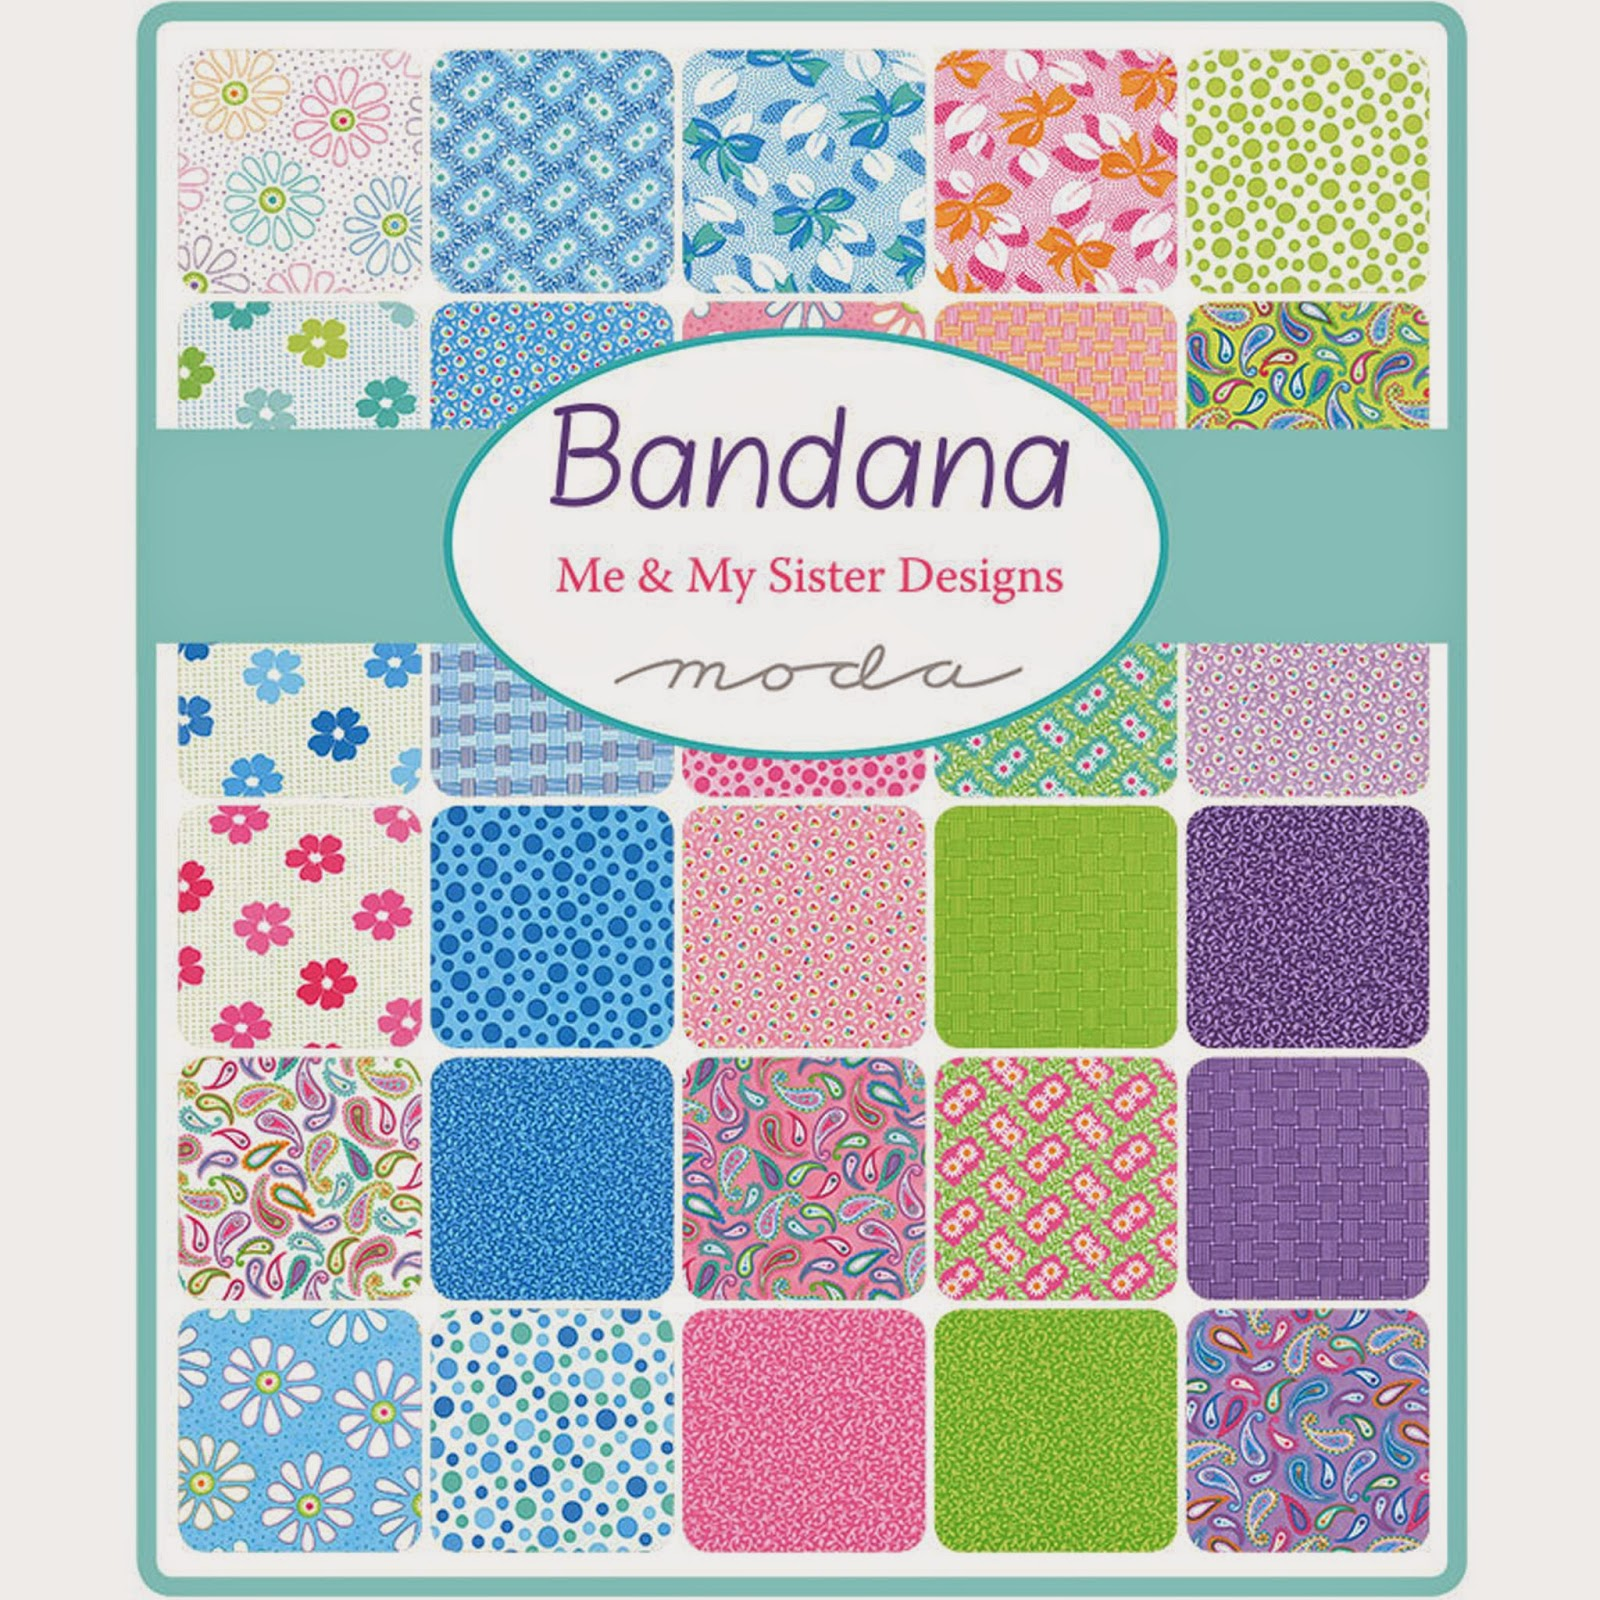 Moda BANDANA Fabric by Me & My Sister Designs for Moda Fabrics